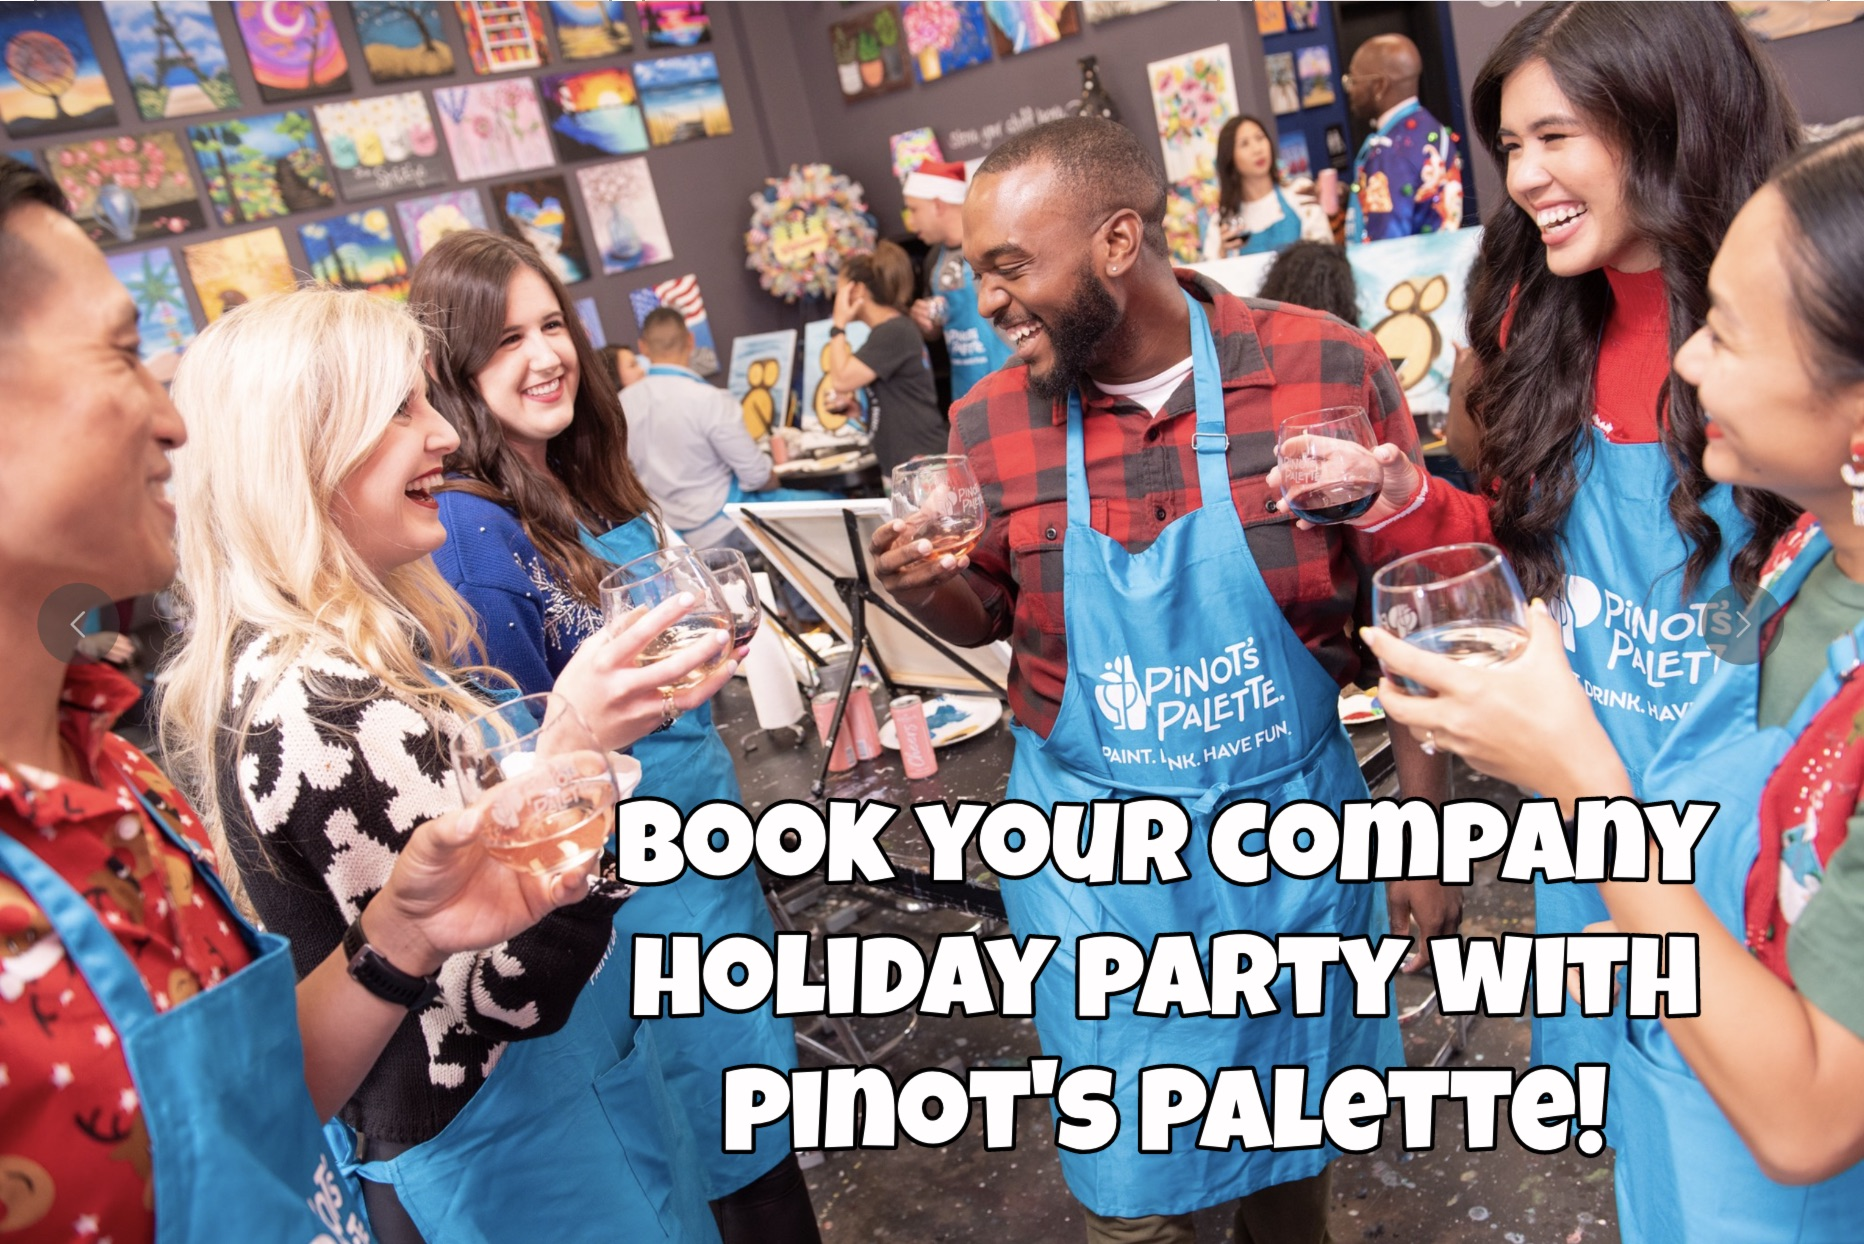 Pinot's Palette for the Holidays!